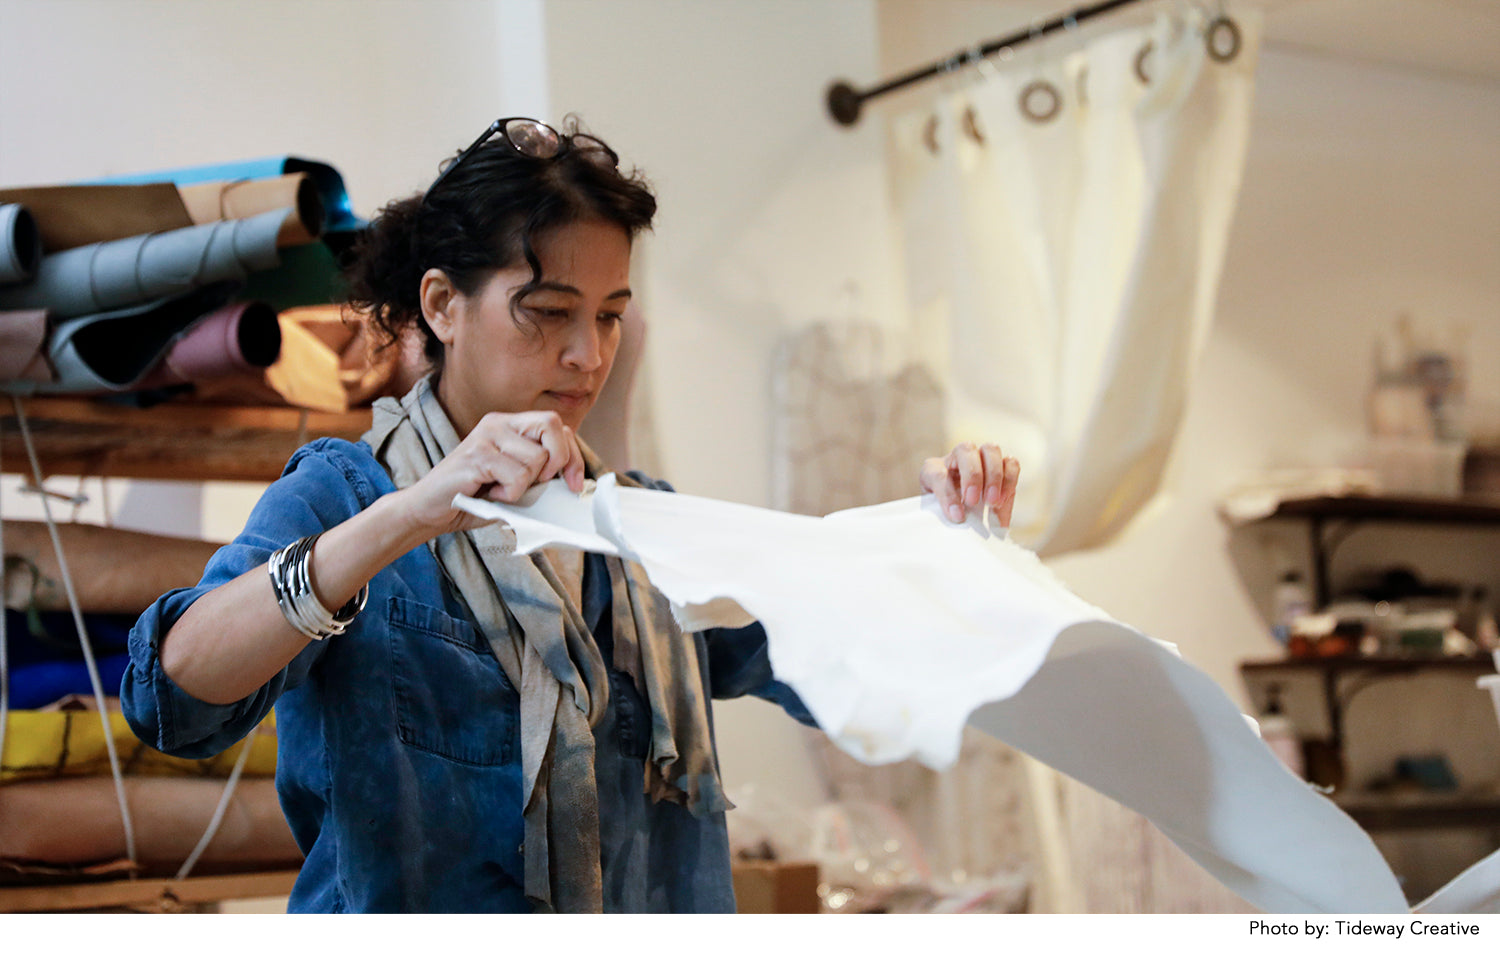 The artist working with leather in her Seattle studio.